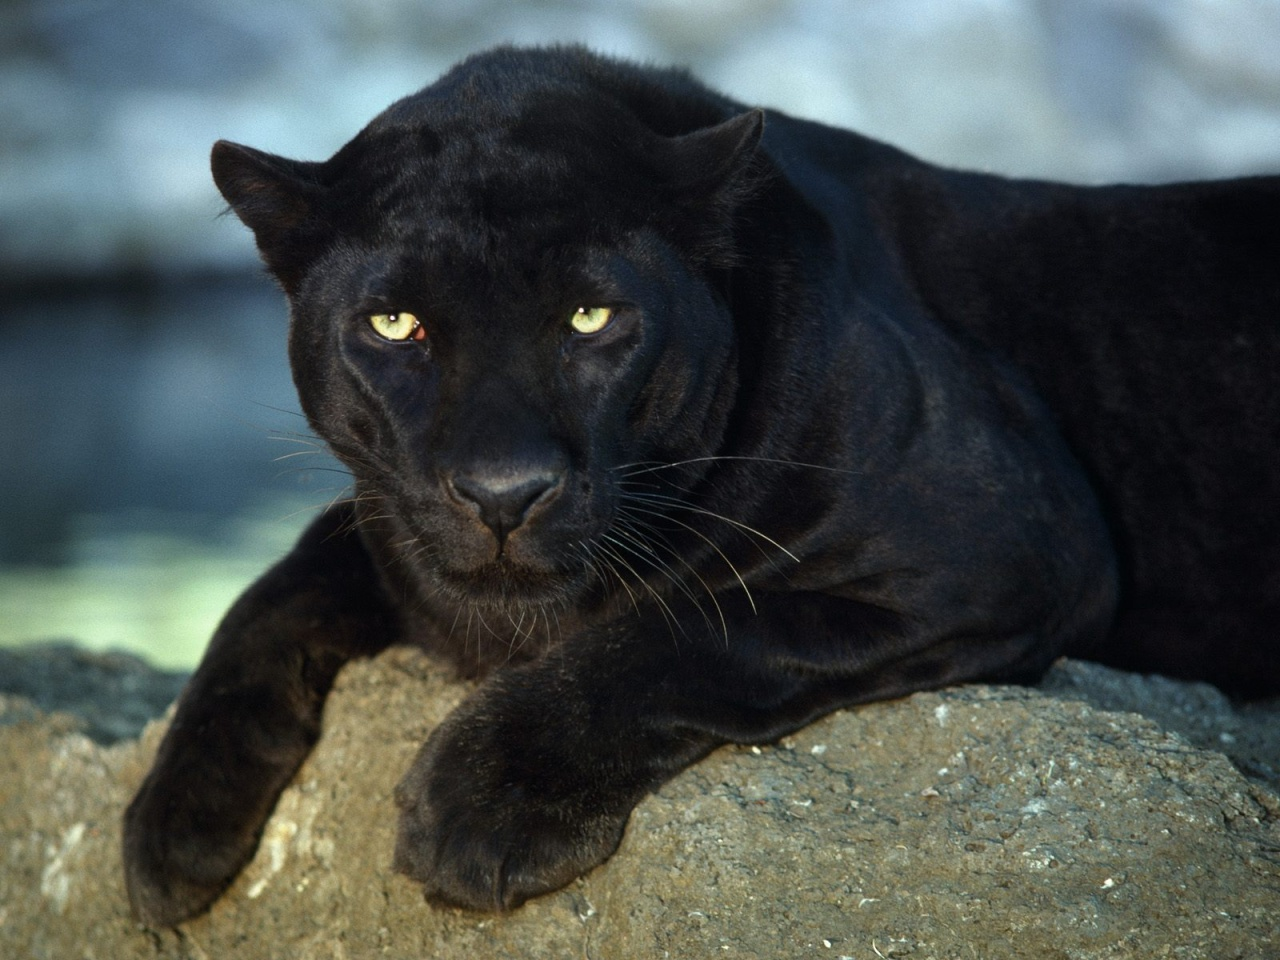 World Images Gallery: Black Panther - photo#22